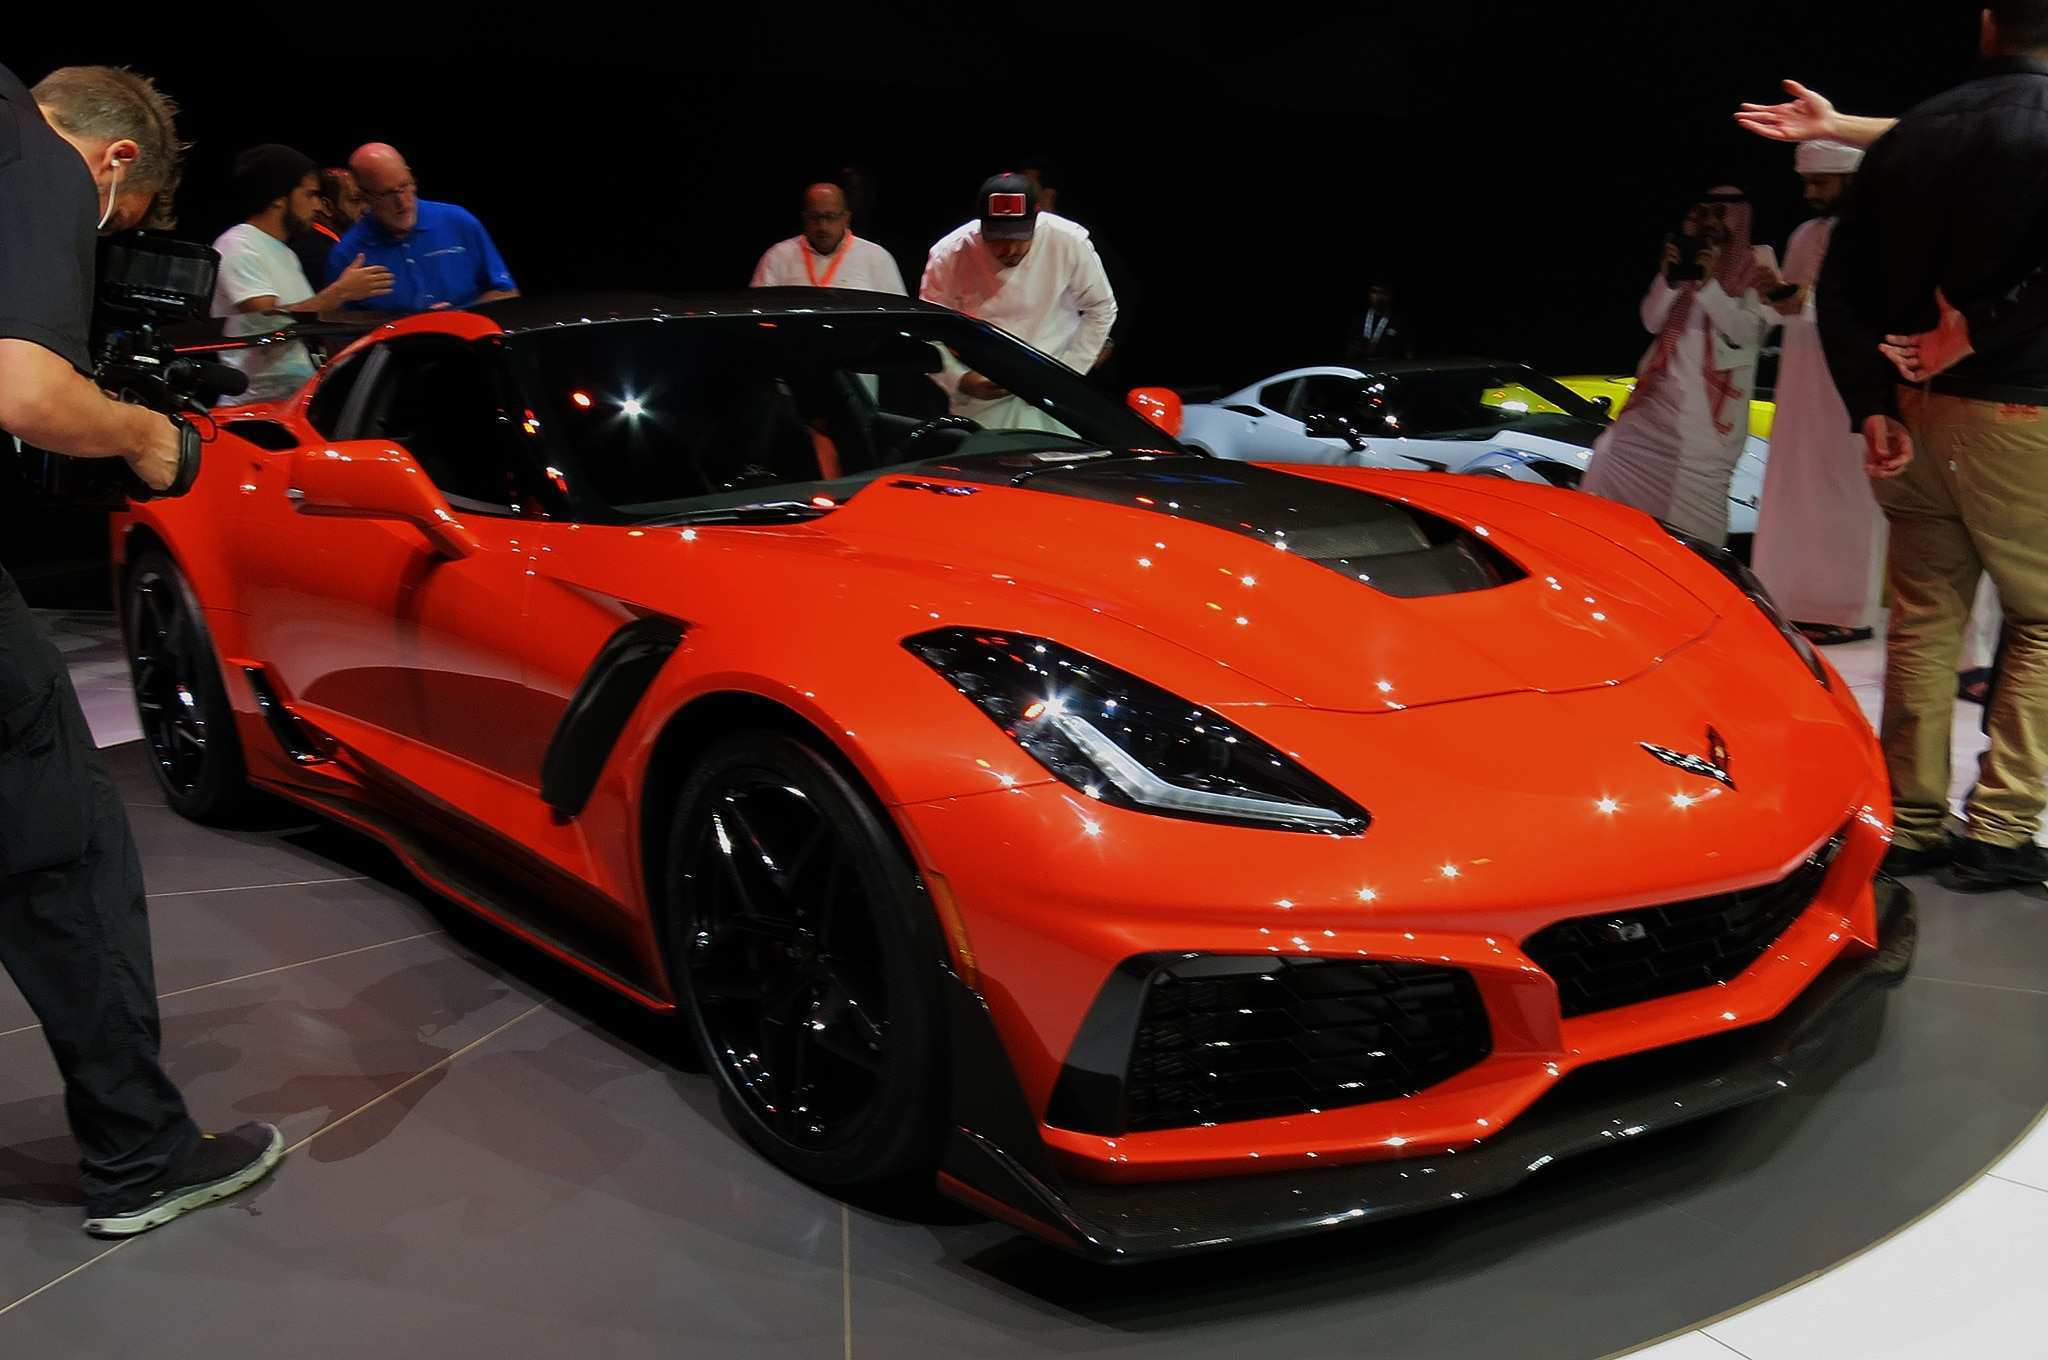 58 Best Review 2019 Chevrolet Corvette Zr1 Price First Drive for 2019 Chevrolet Corvette Zr1 Price